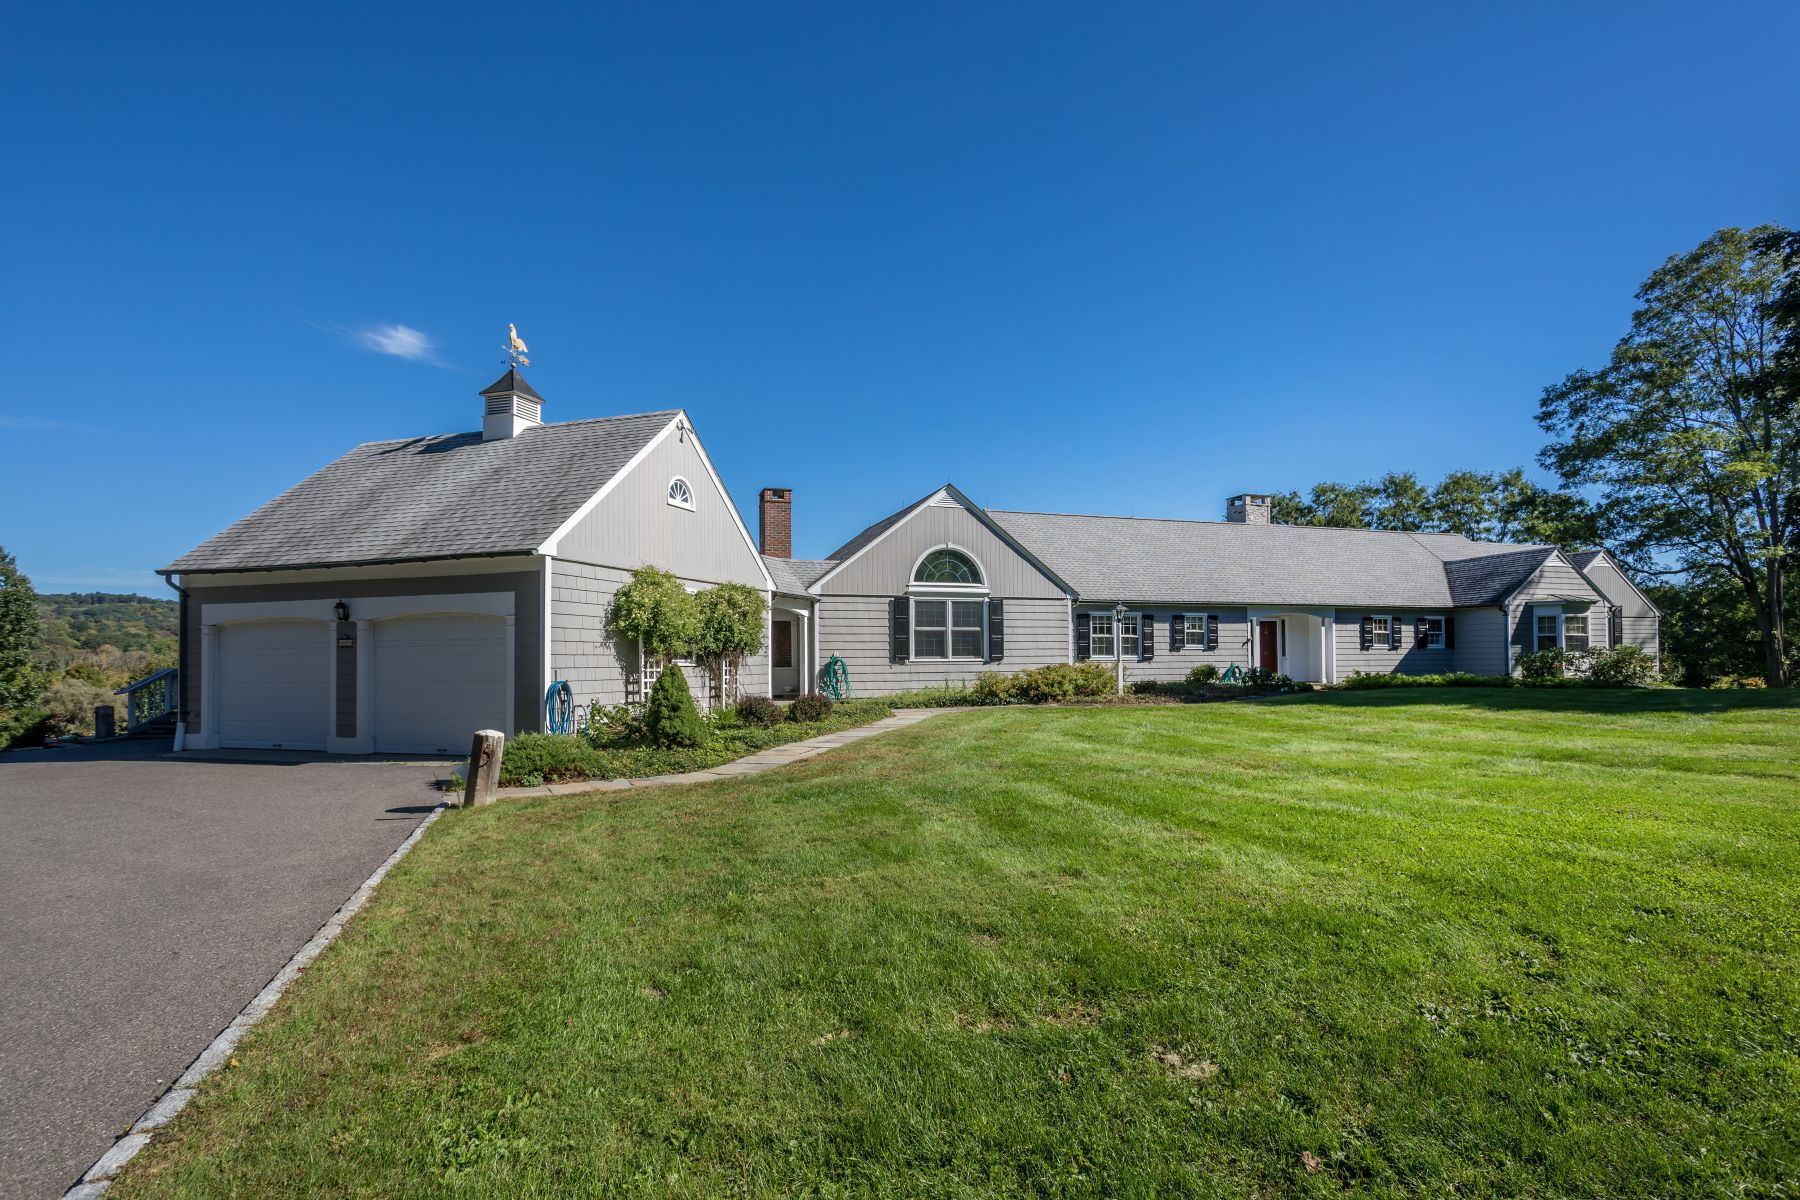 Single Family Home for Sale at Spacious Single-Level Living! 60 Hilltop Road Sharon, Connecticut 06069 United States